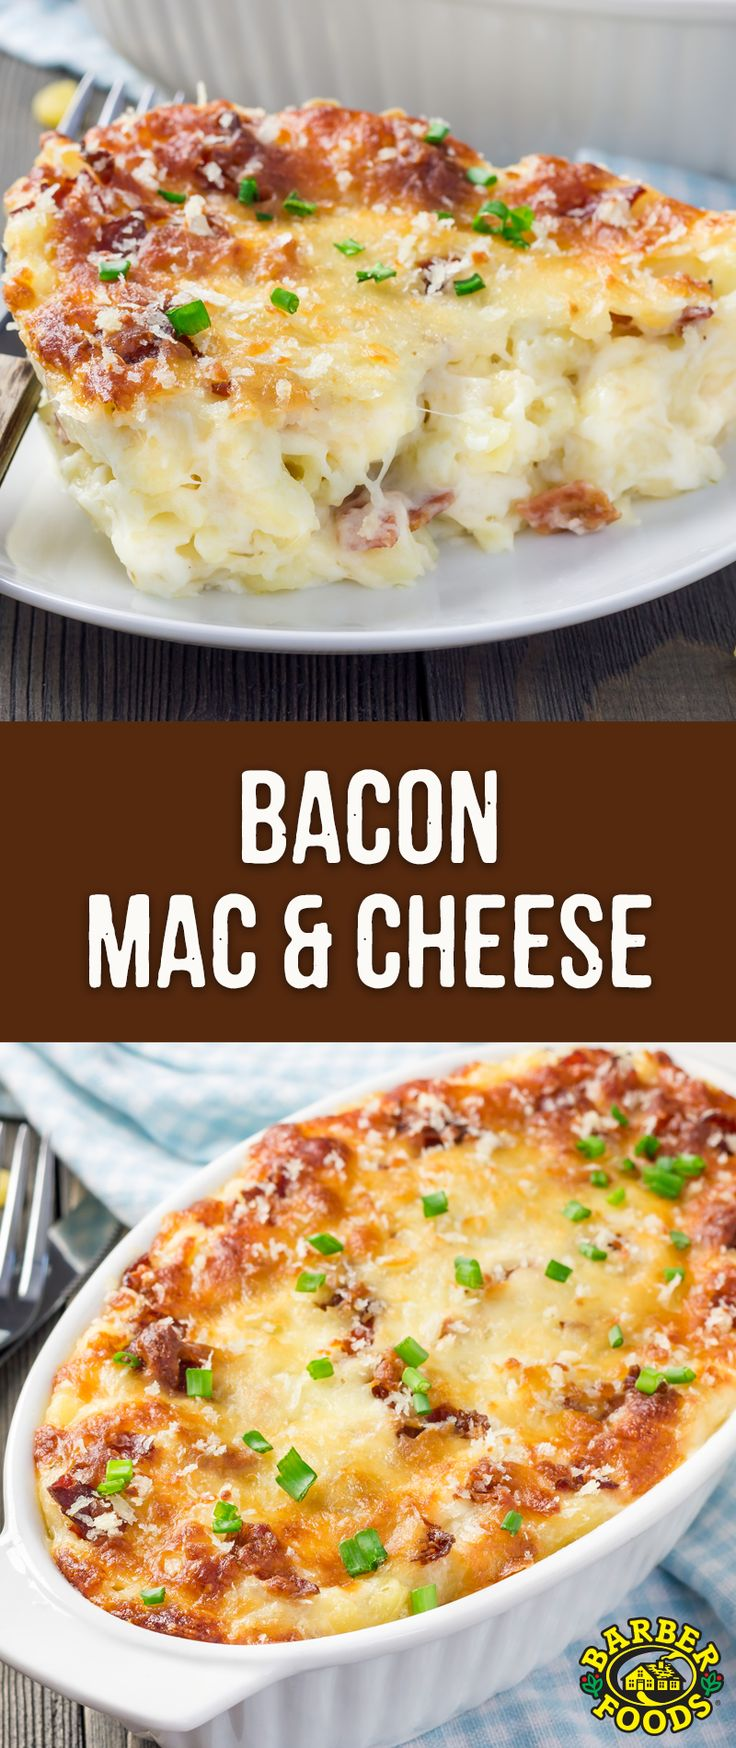 Looking for some delicious comfort food? Check out this EASY recipe for Bacon Mac & Cheese! #barbernight